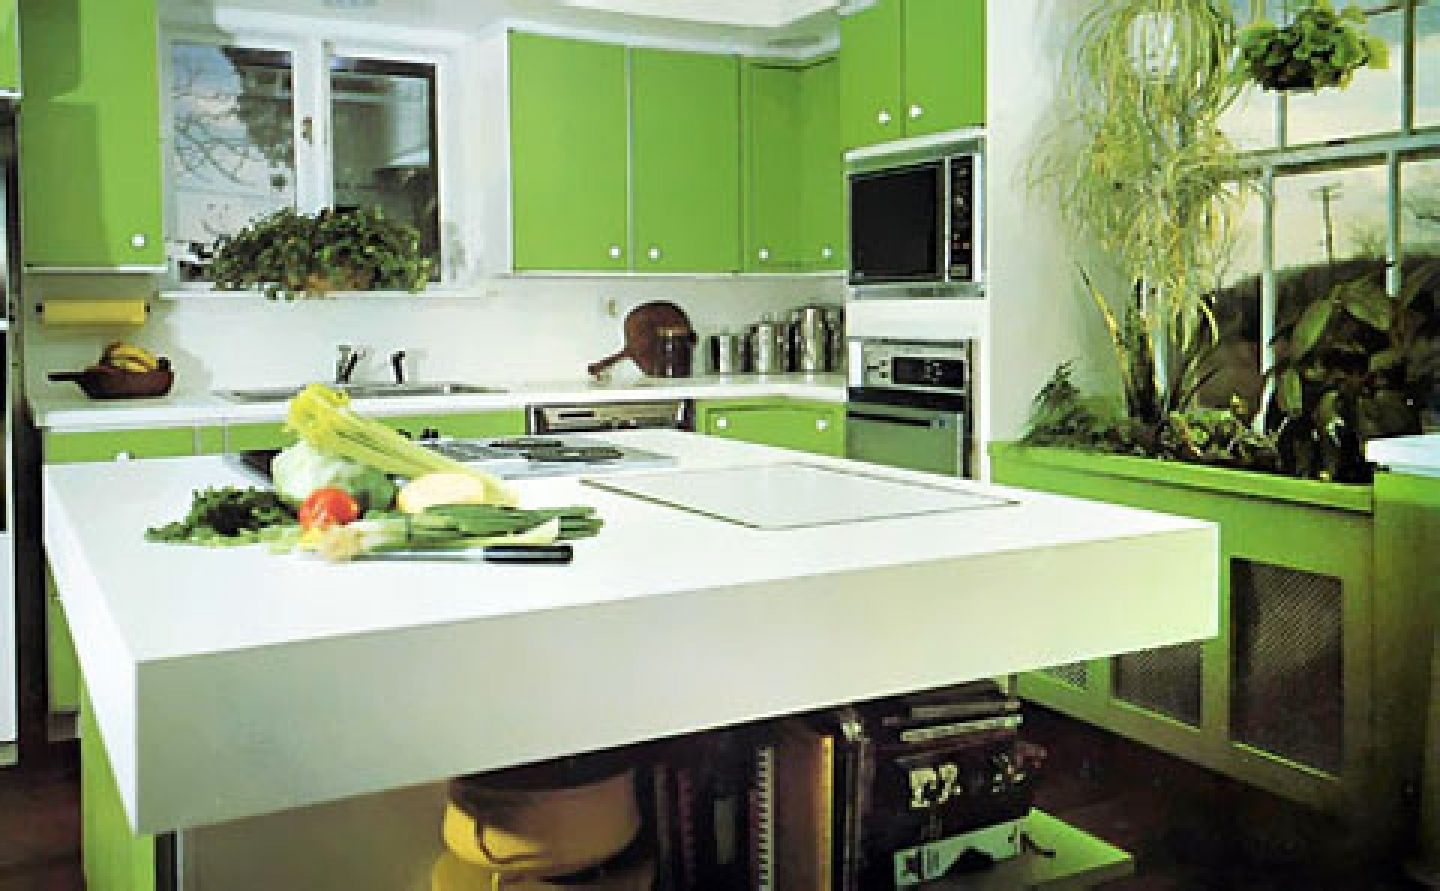 Kitchen 101 creating healthier and greener kitchen for Kitchen colors with white cabinets with mermaid outdoor wall art